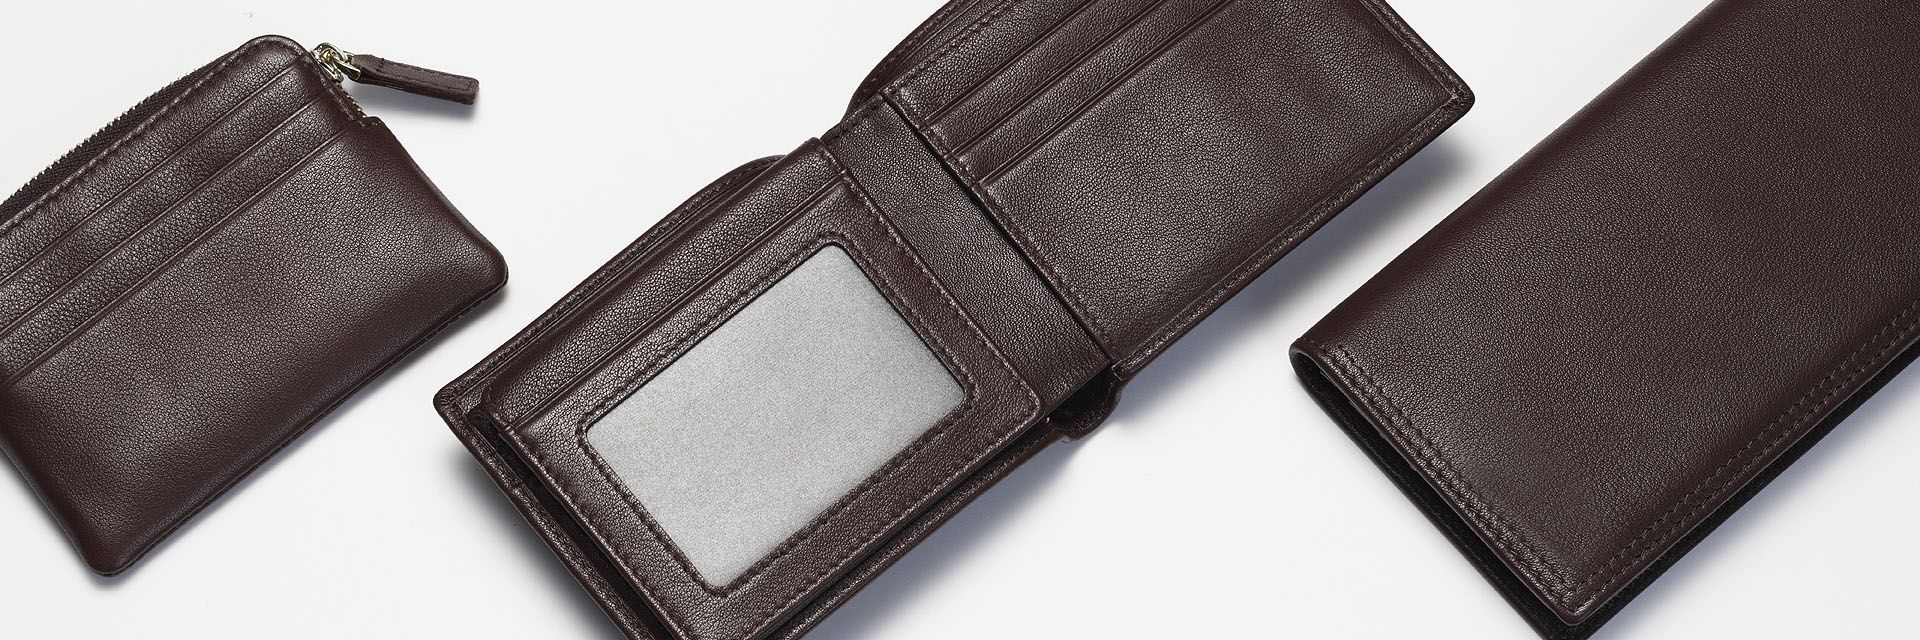 Looking leather wallet manufacturers?